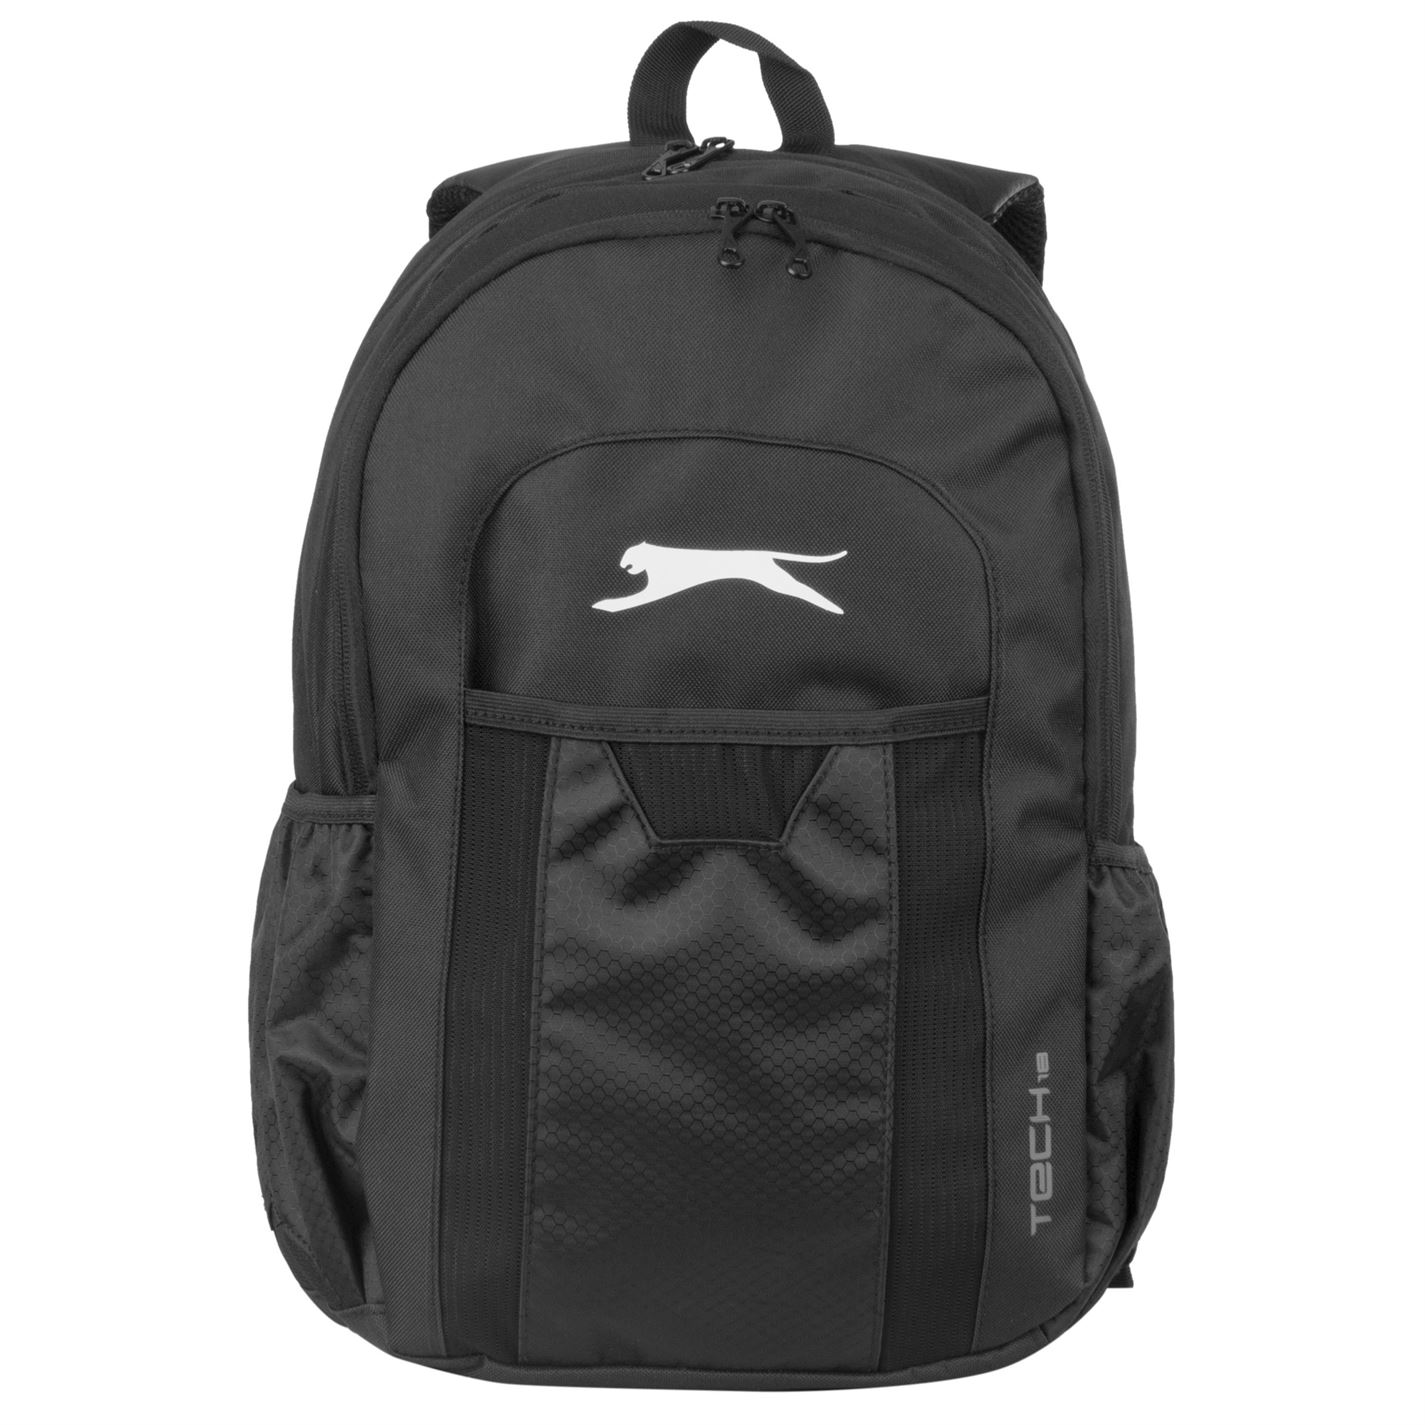 c148477b26 Slazenger Tech Backpack Rucksack Bag School Travel Accessory Brand ...